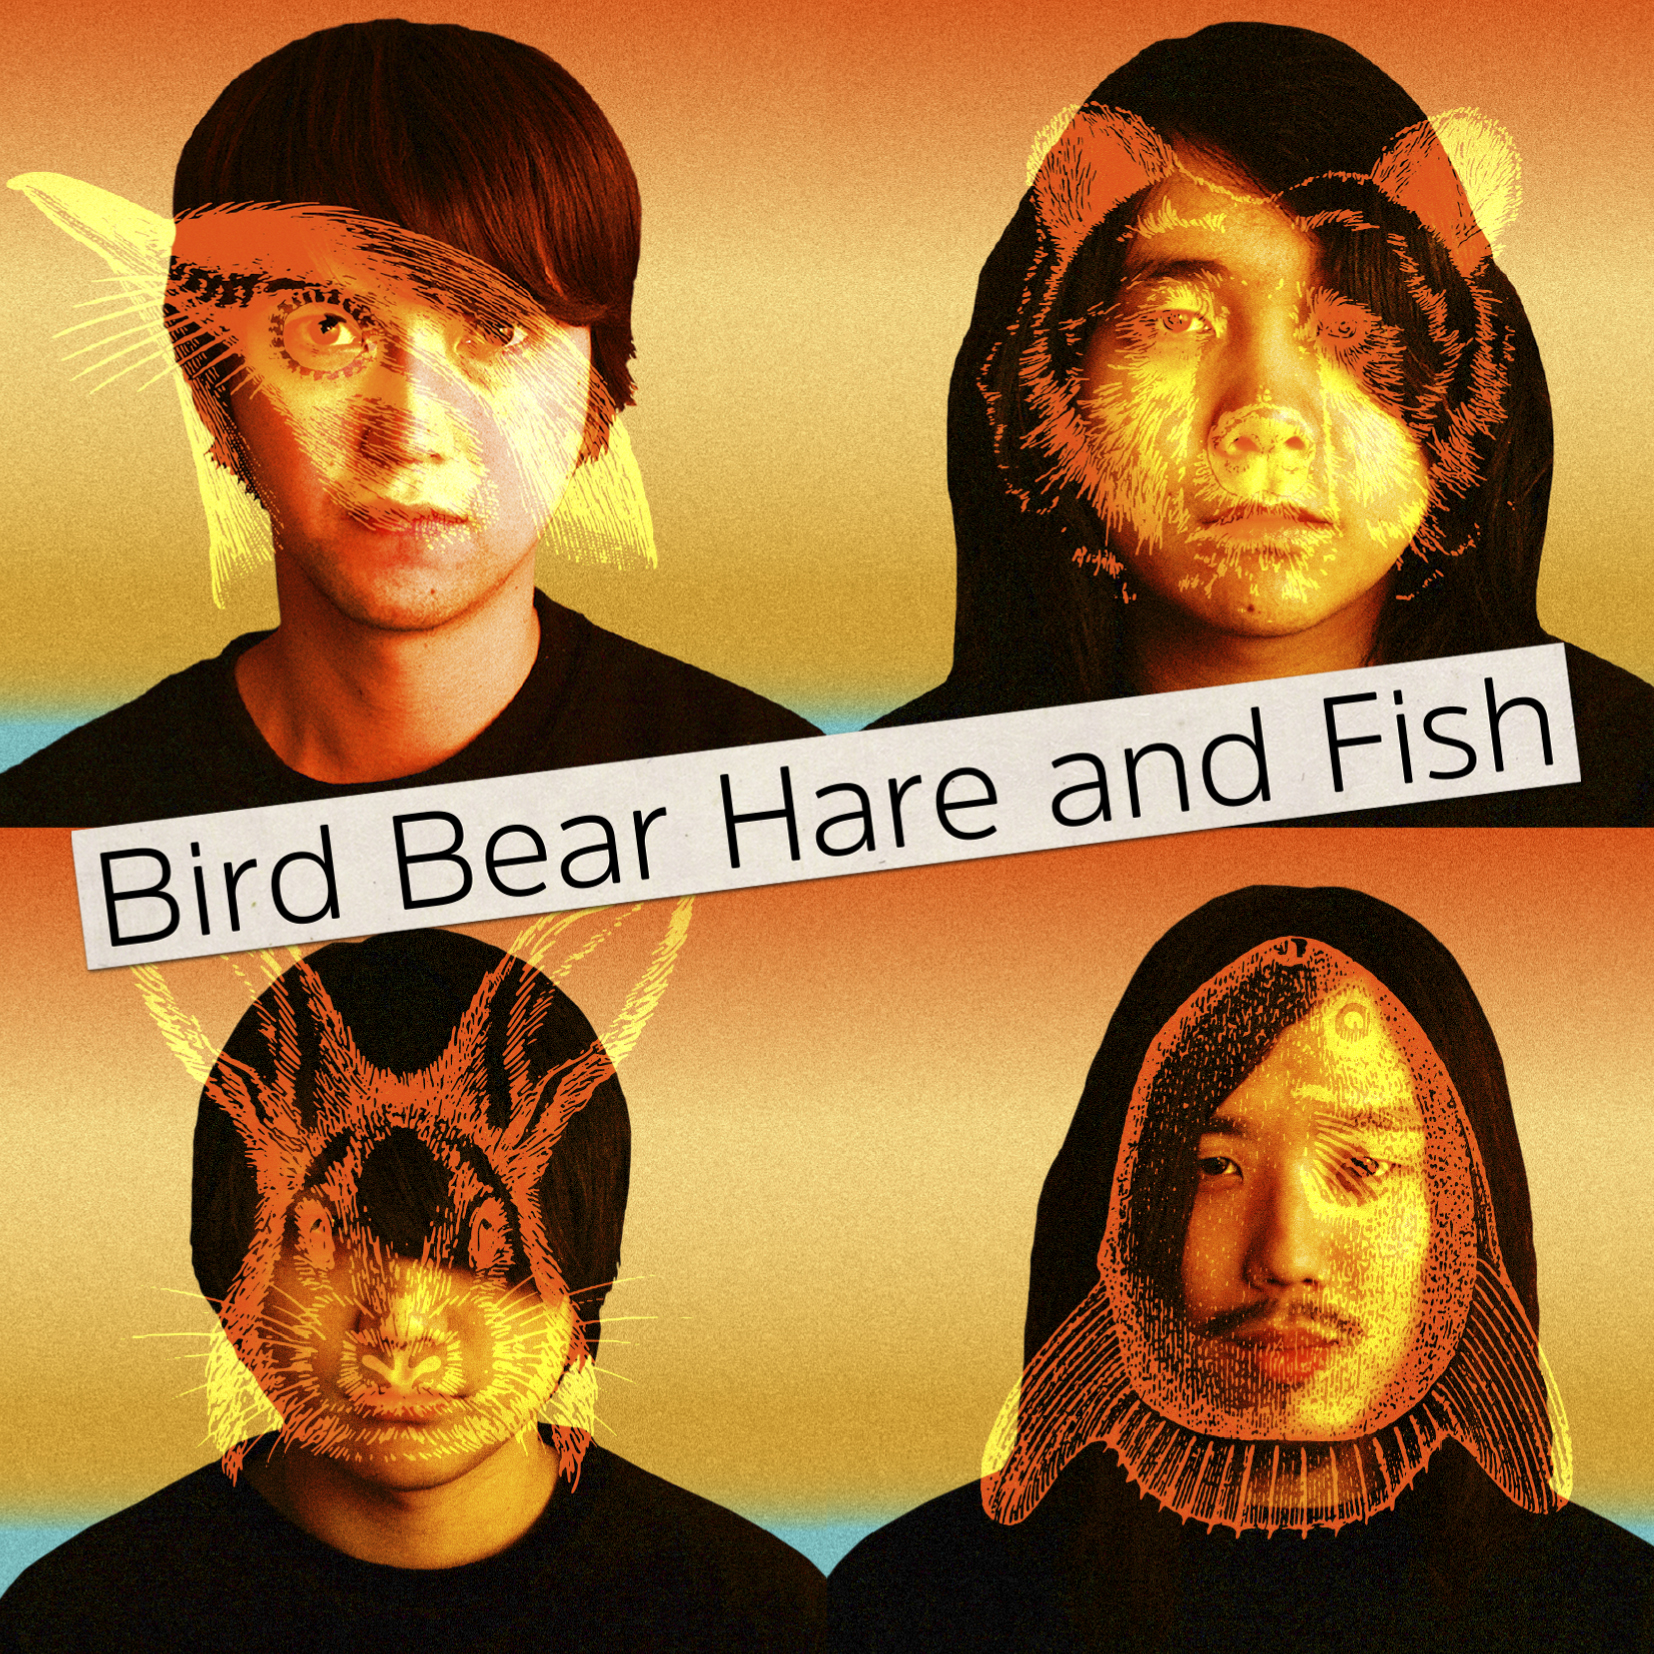 Bird Bear Hare and Fish 「次の火」